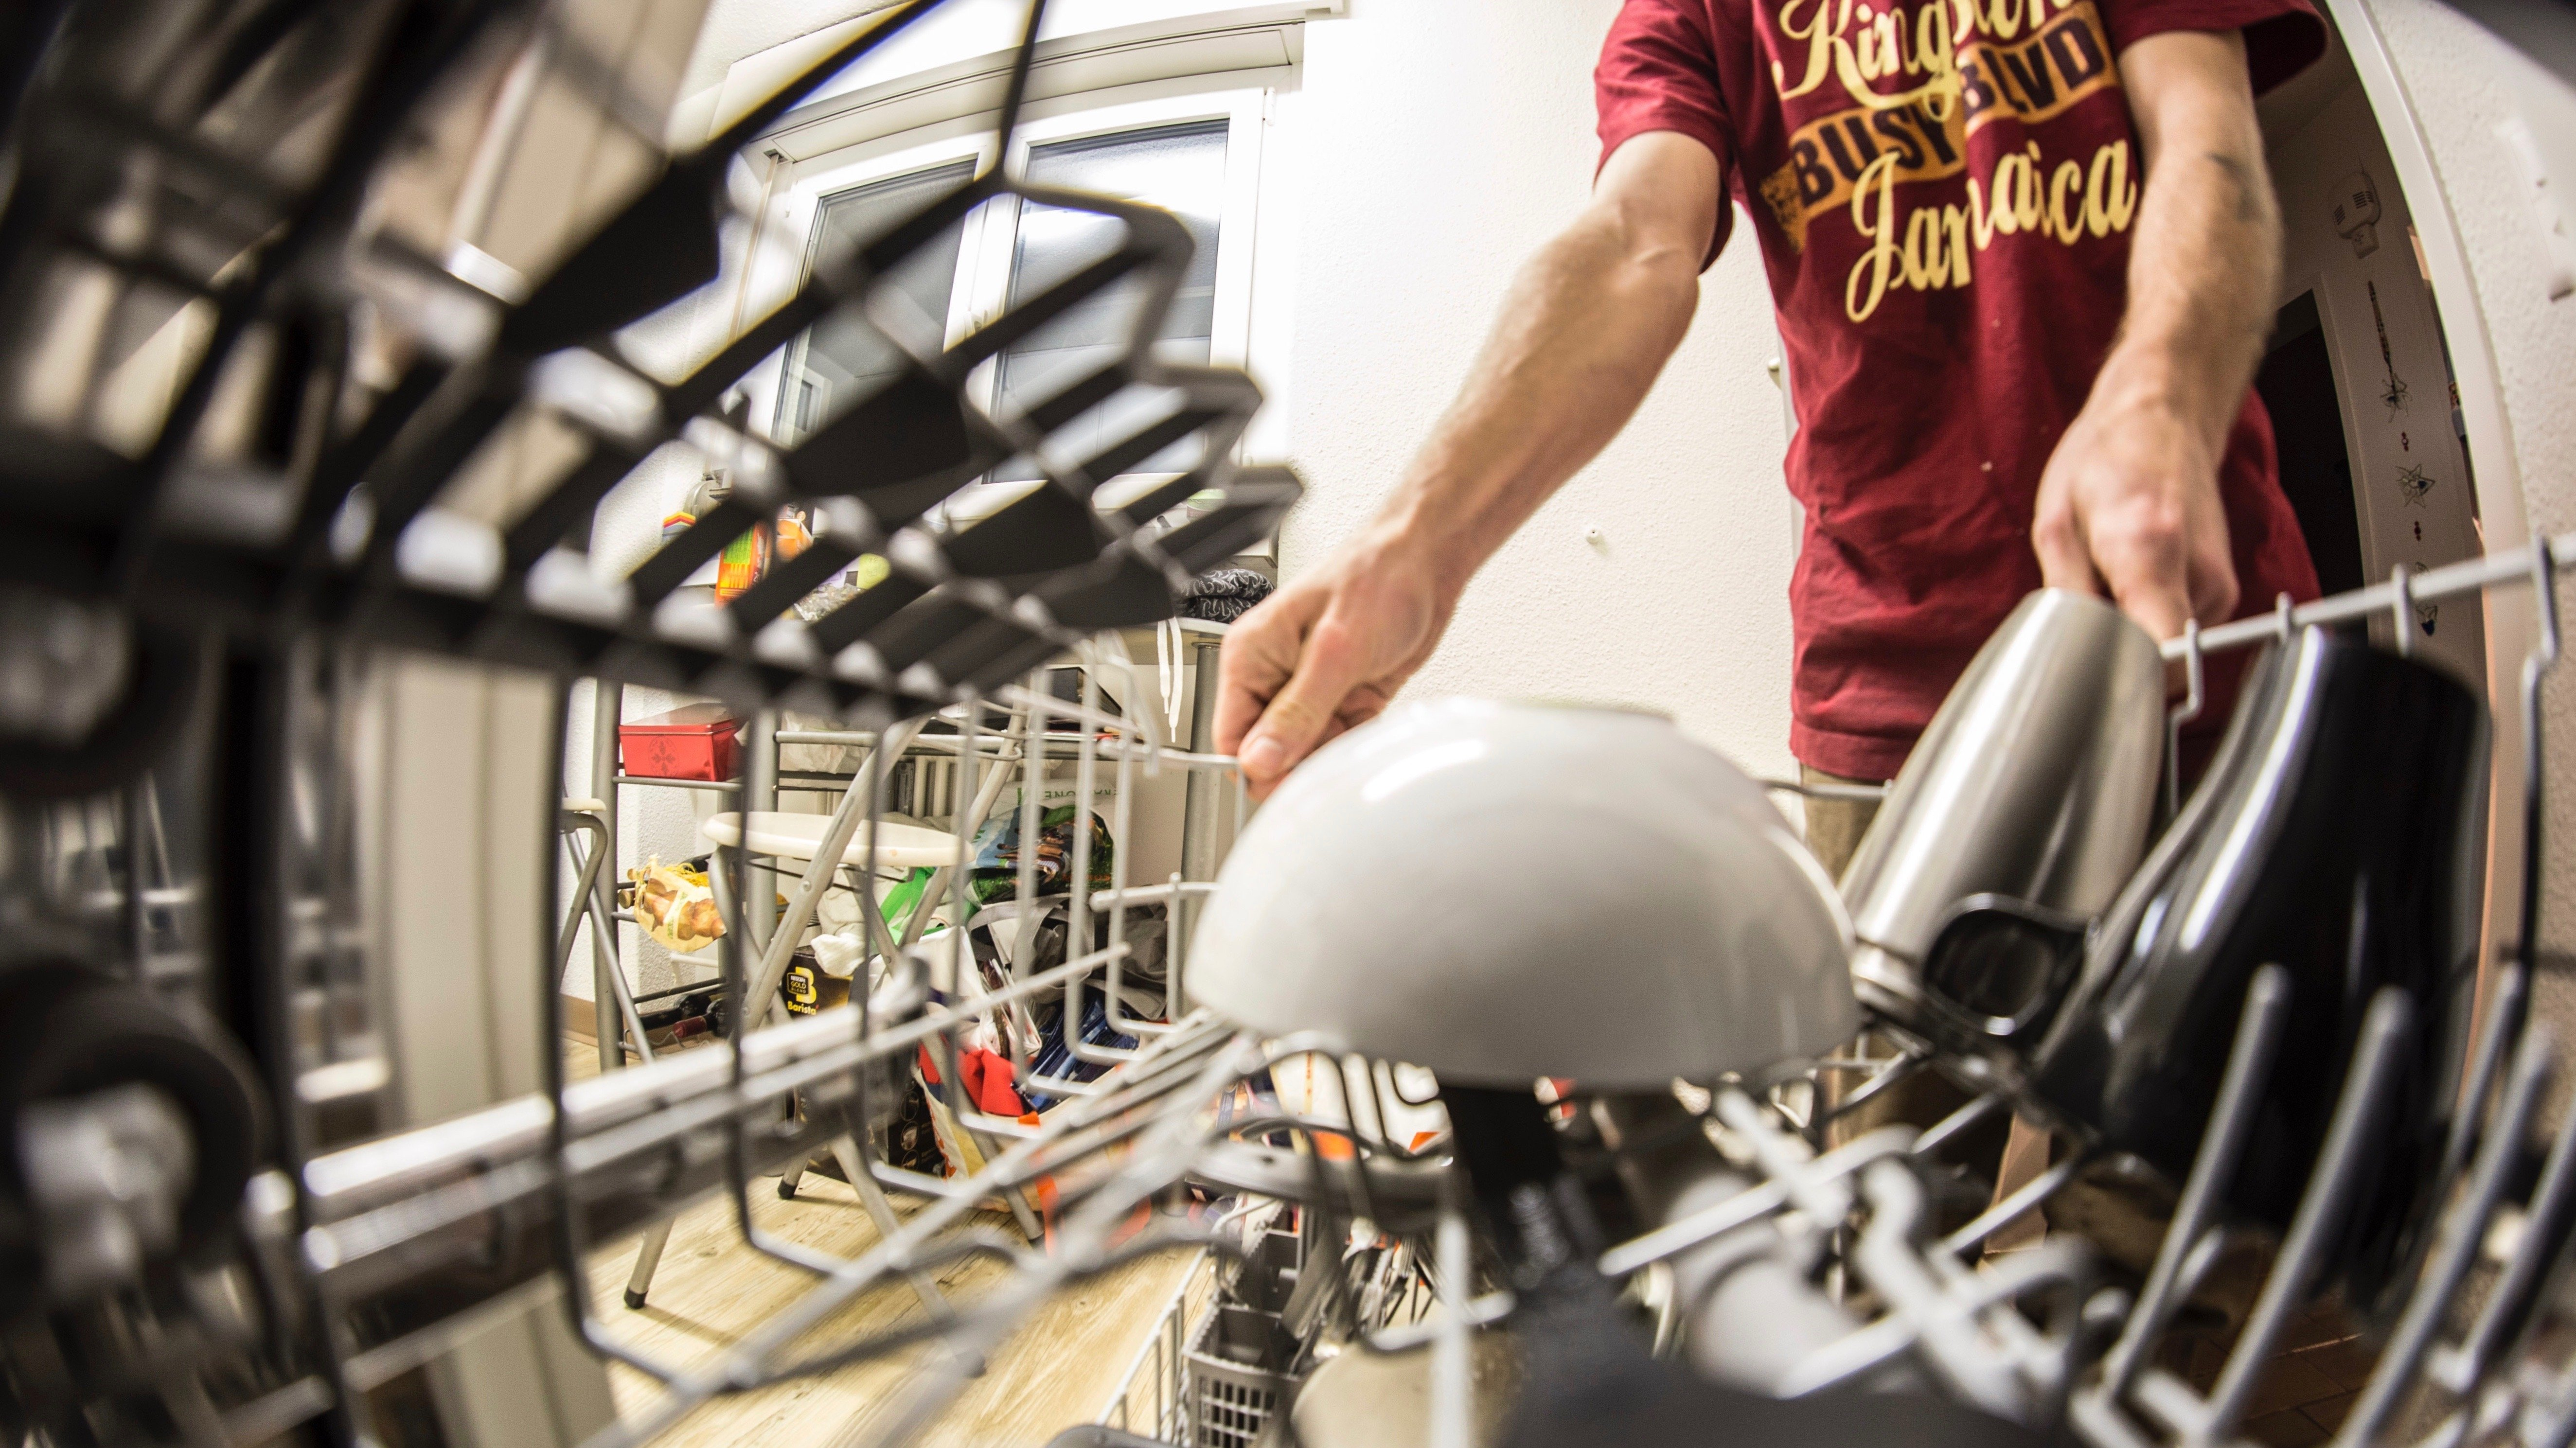 Attack on Dishwasher Standards Hurts Consumers Environment